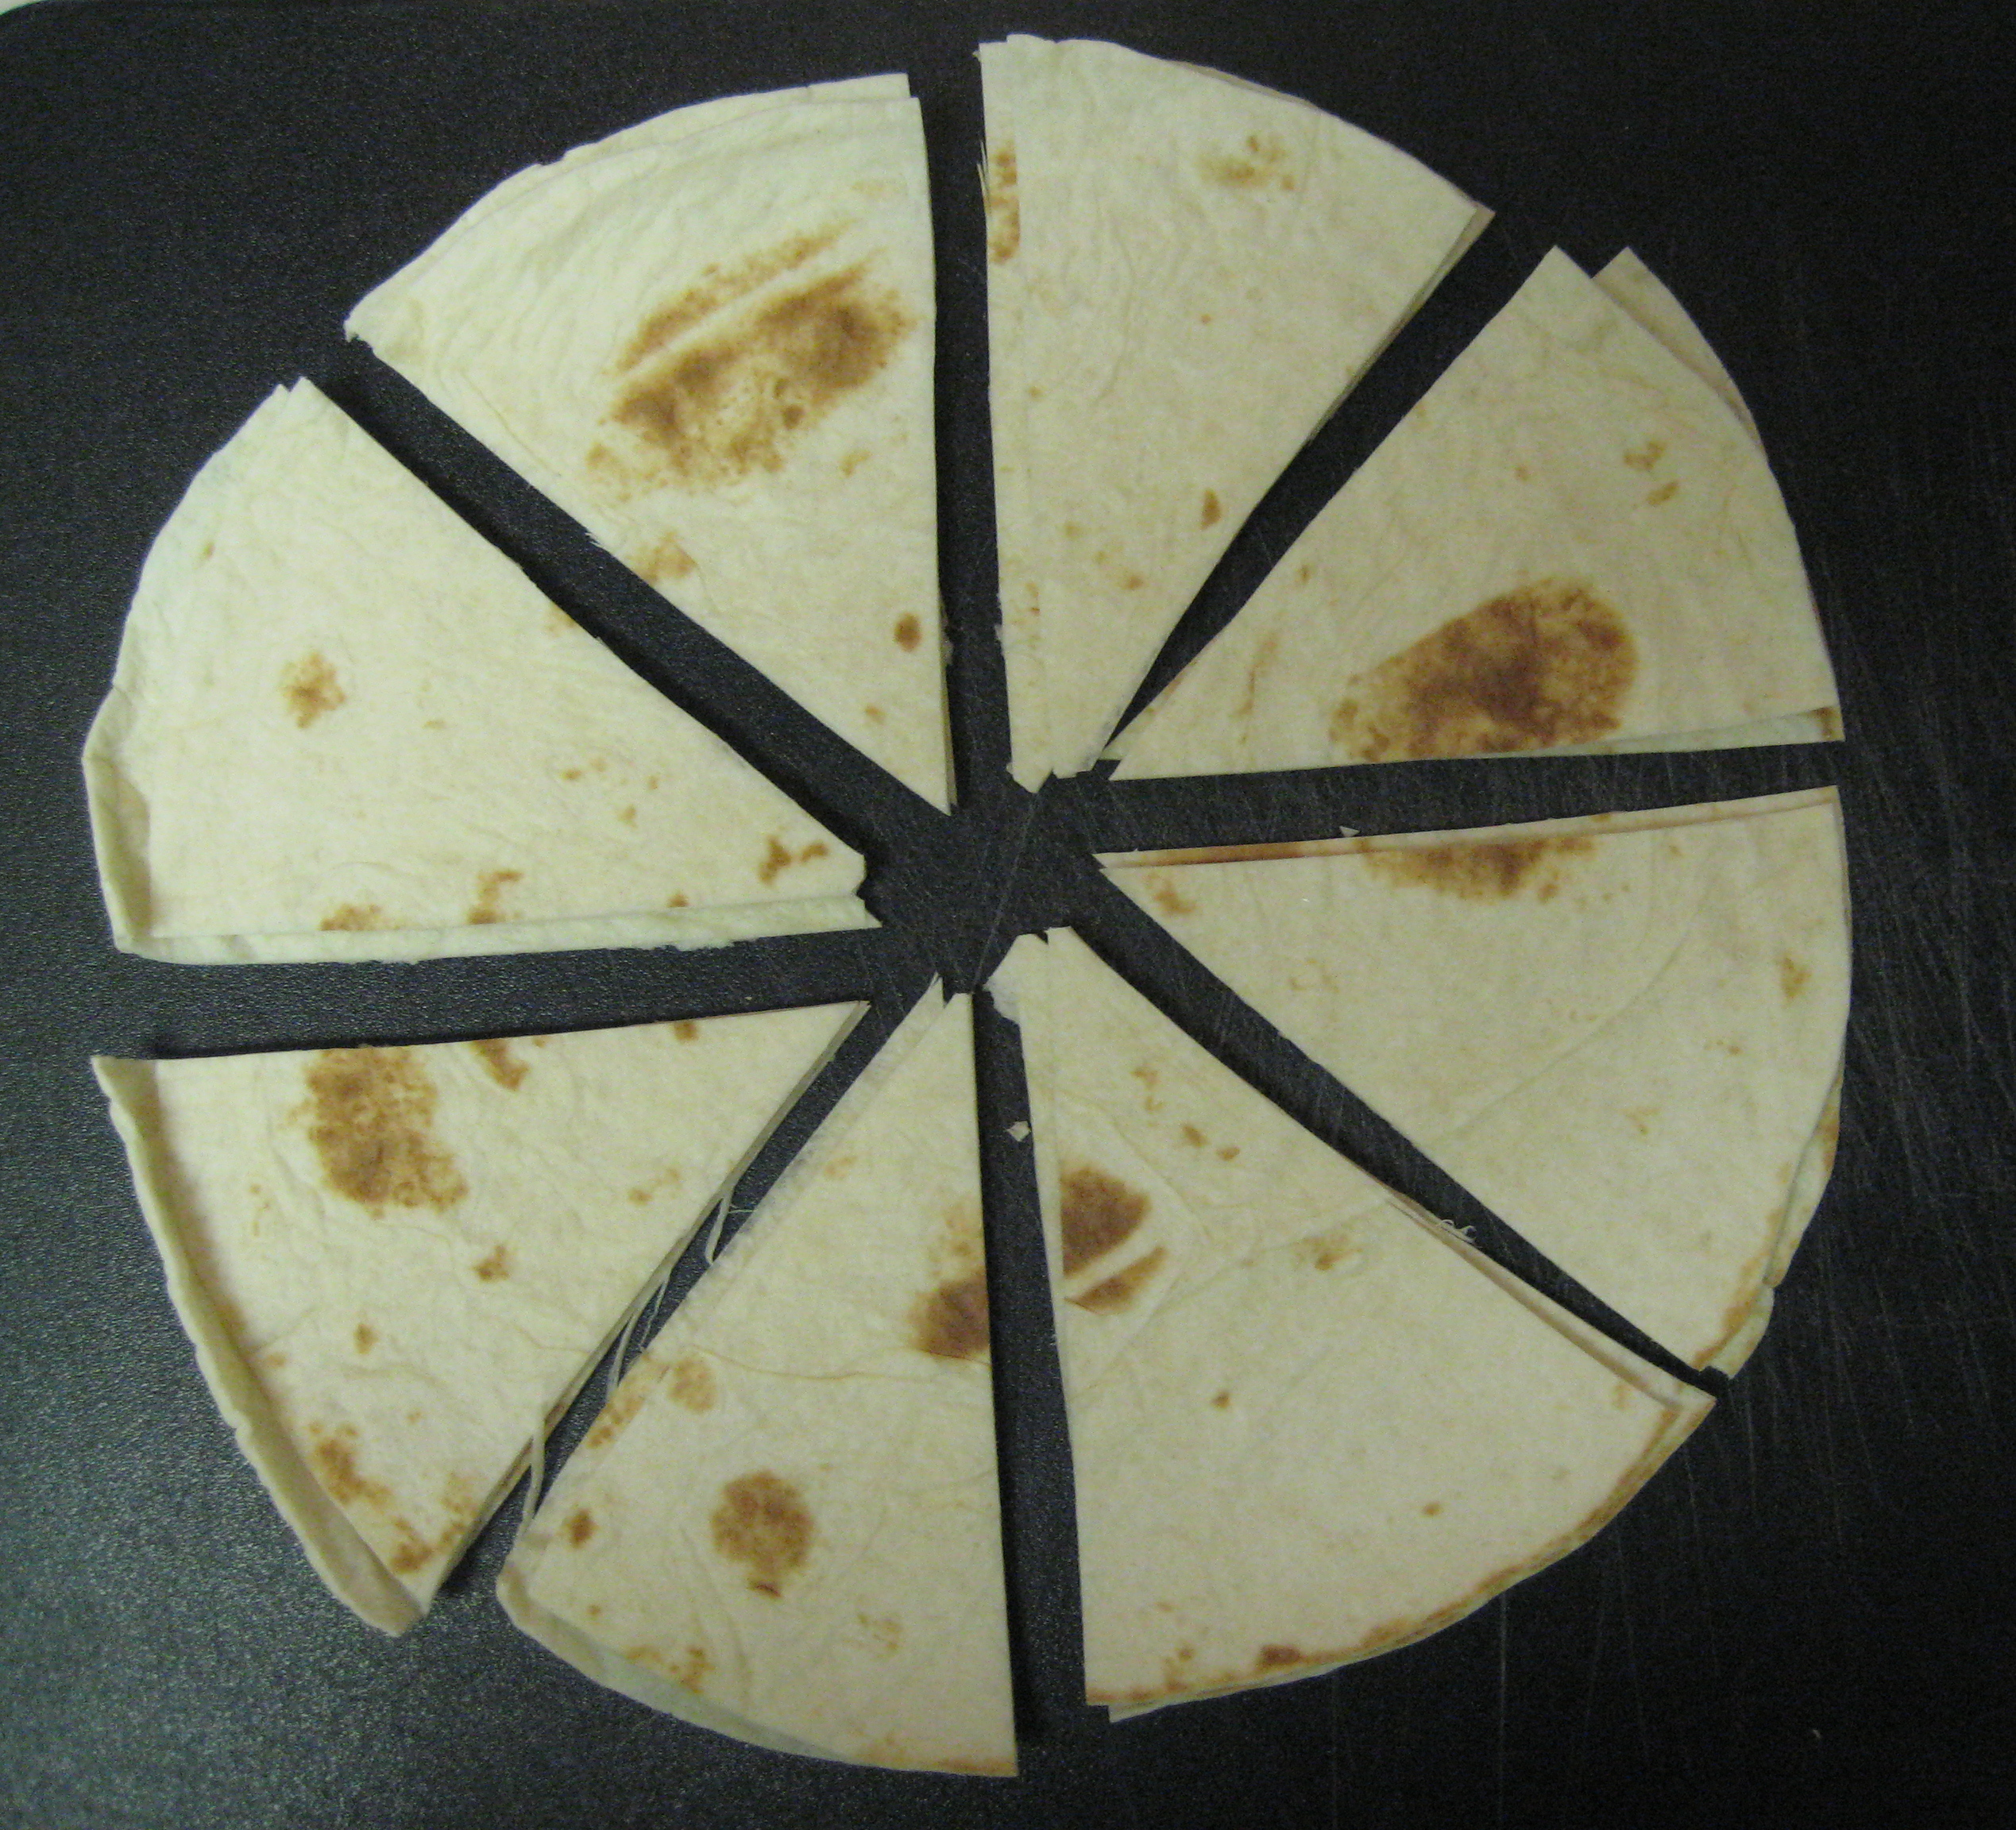 Slice the tortillas as you would a pizza or pie.